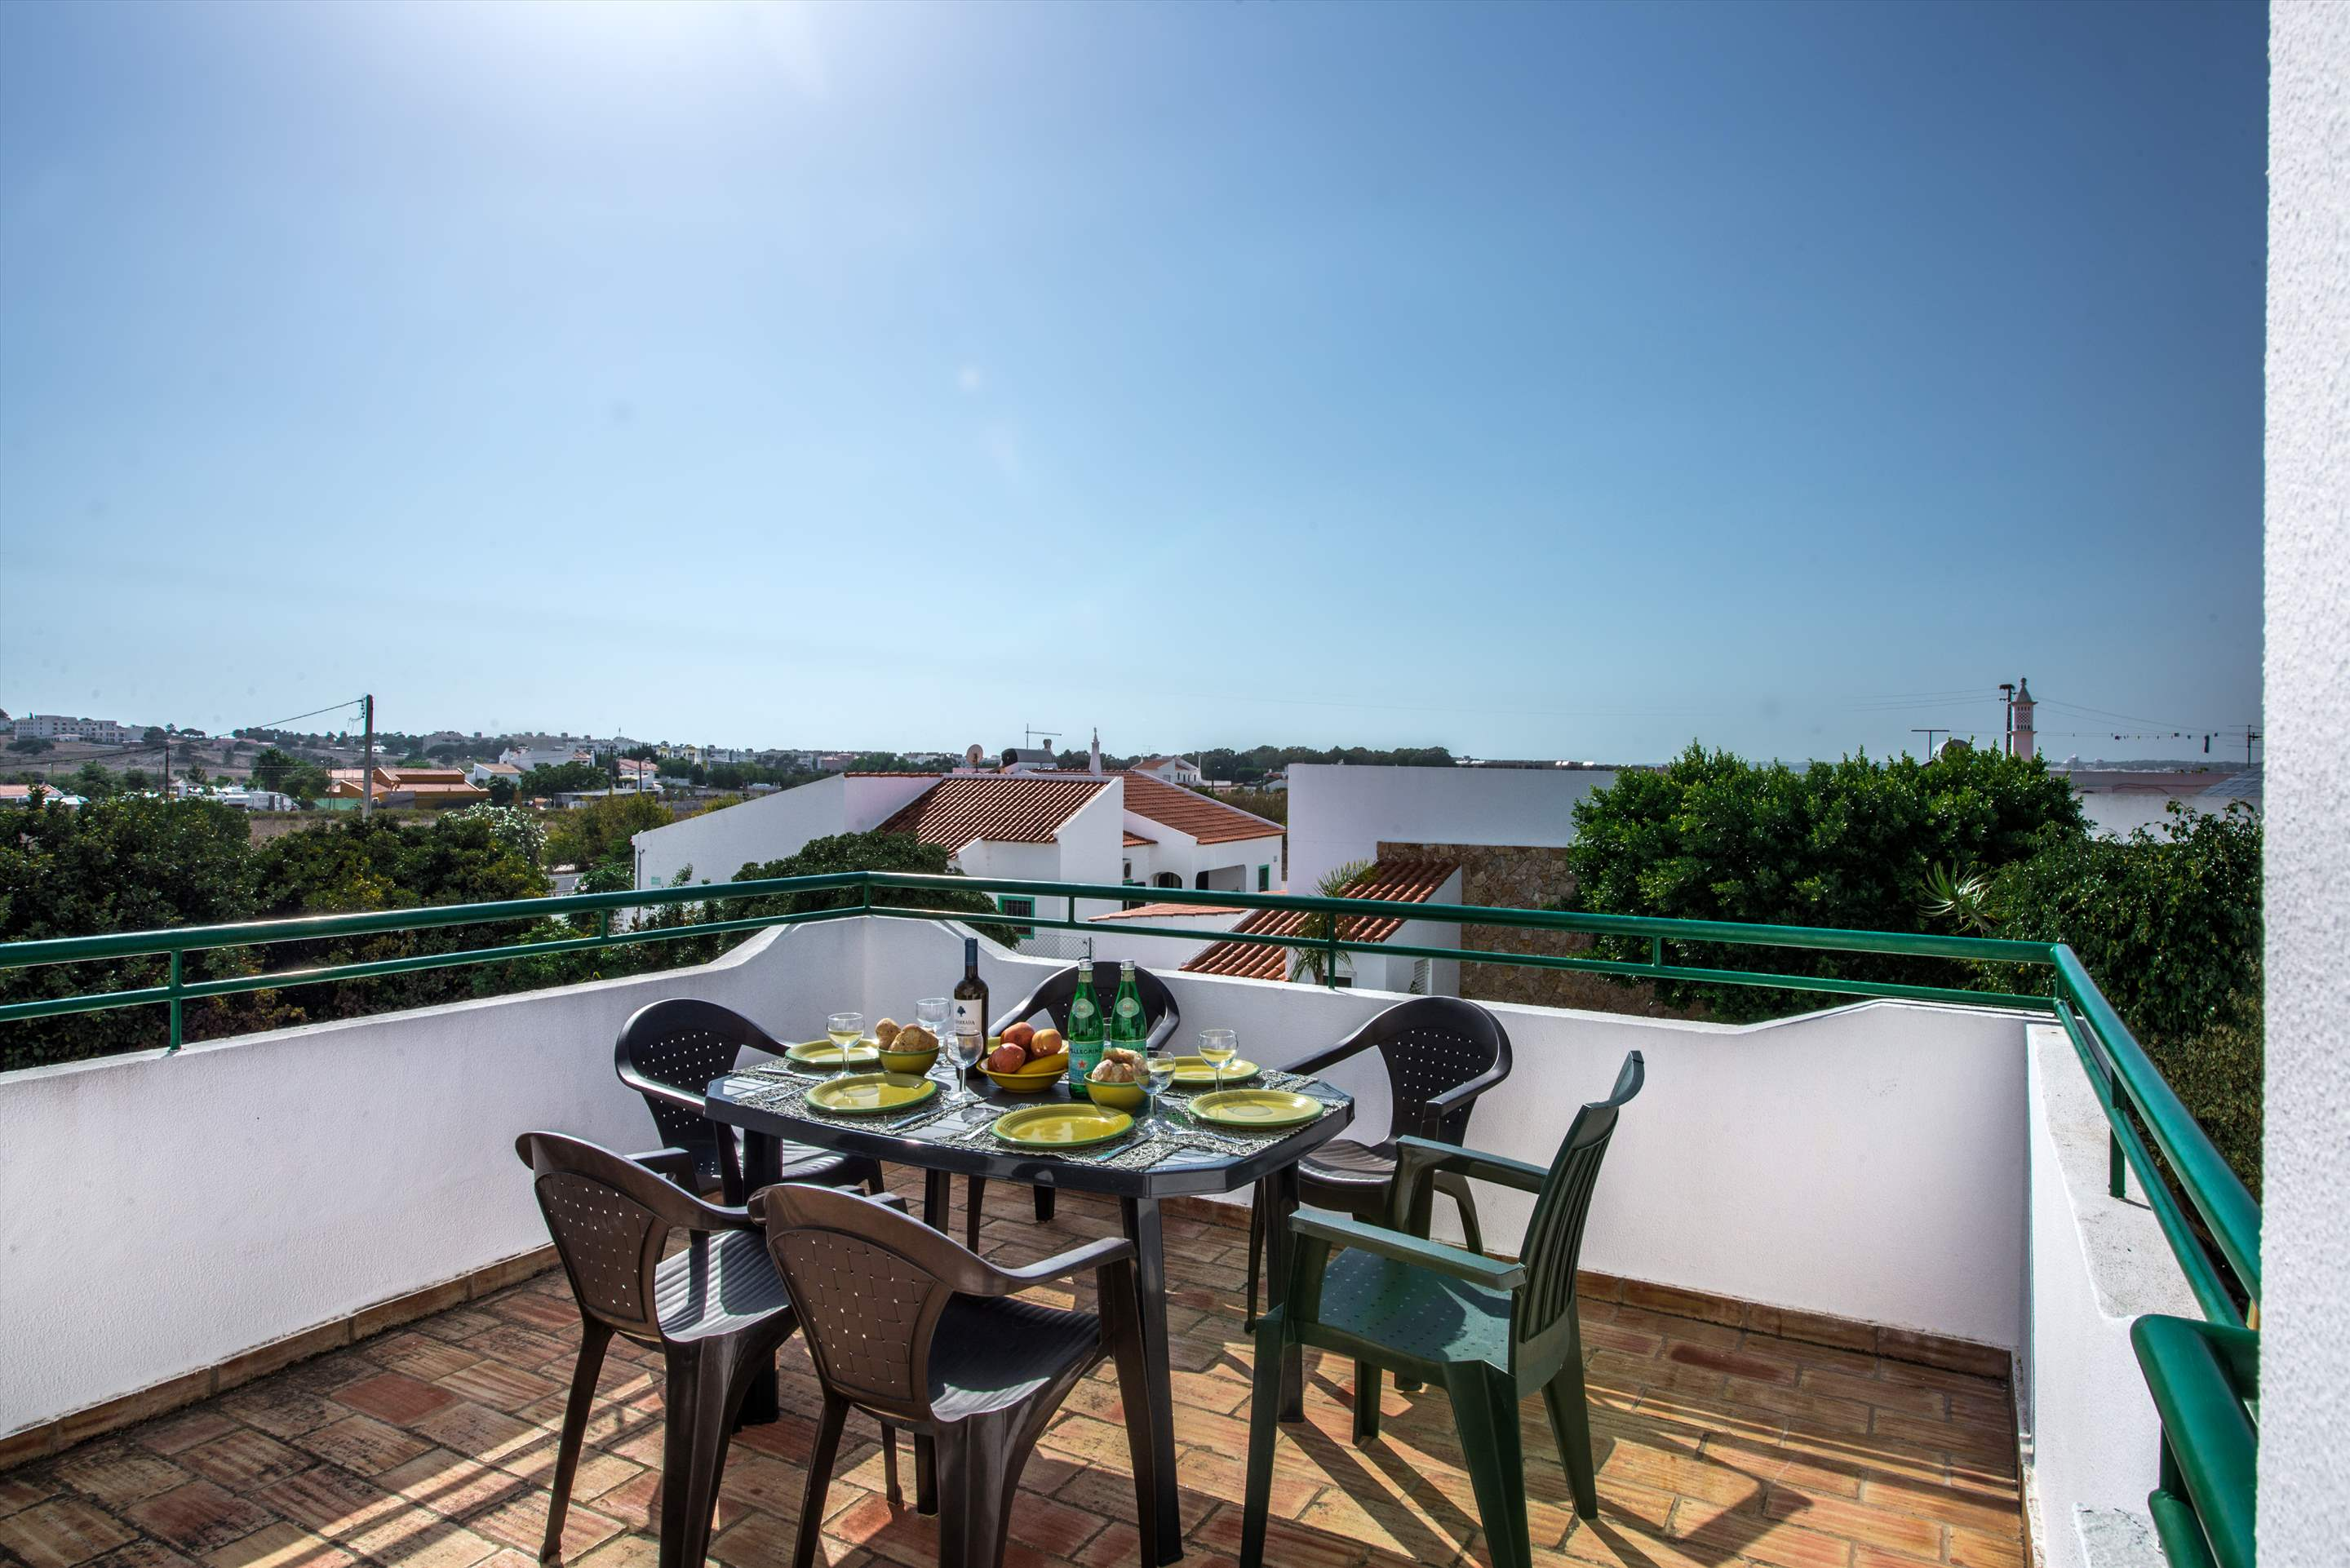 Casa Rebela, Up to 9 persons rate, 5 bedroom villa in Gale, Vale da Parra and Guia, Algarve Photo #13